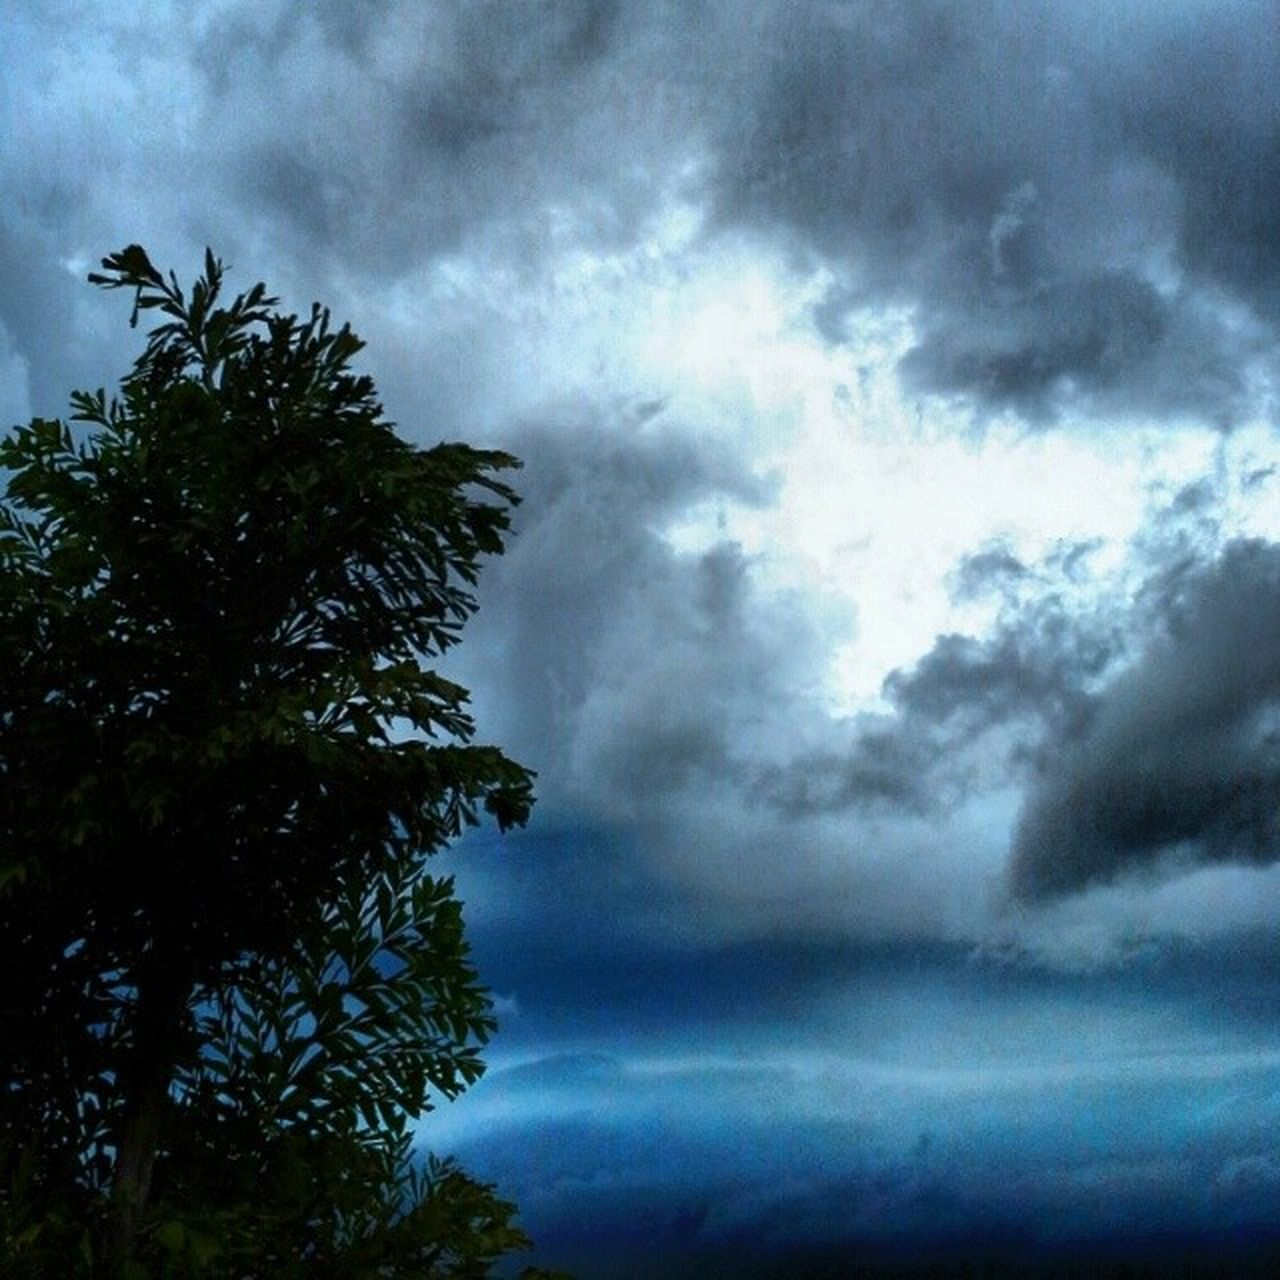 sky, cloud - sky, nature, beauty in nature, tree, scenics, storm cloud, low angle view, day, no people, outdoors